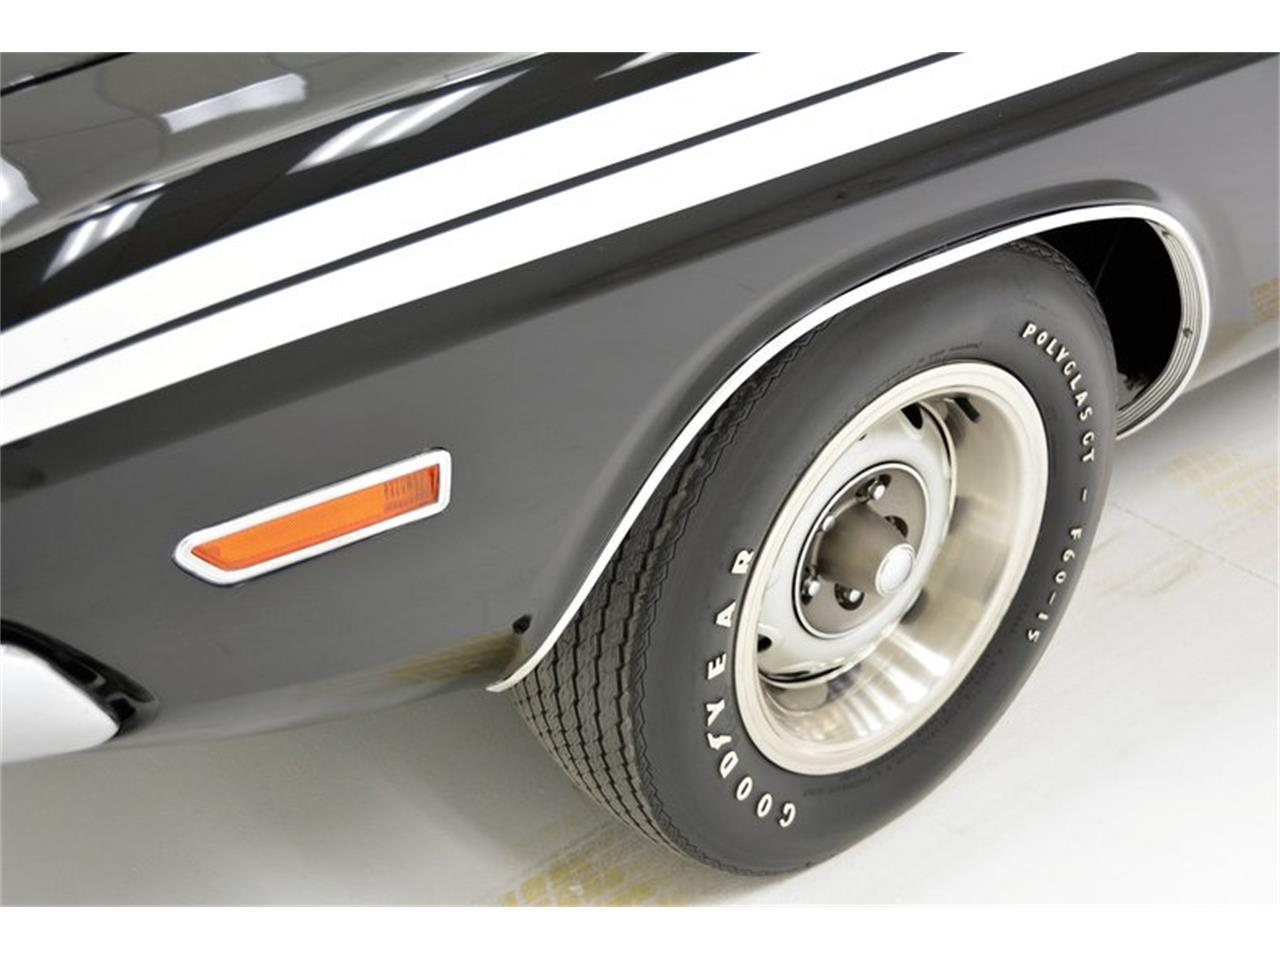 Large Picture of Classic '71 Challenger R/T located in Morgantown Pennsylvania - $195,000.00 - MZFX